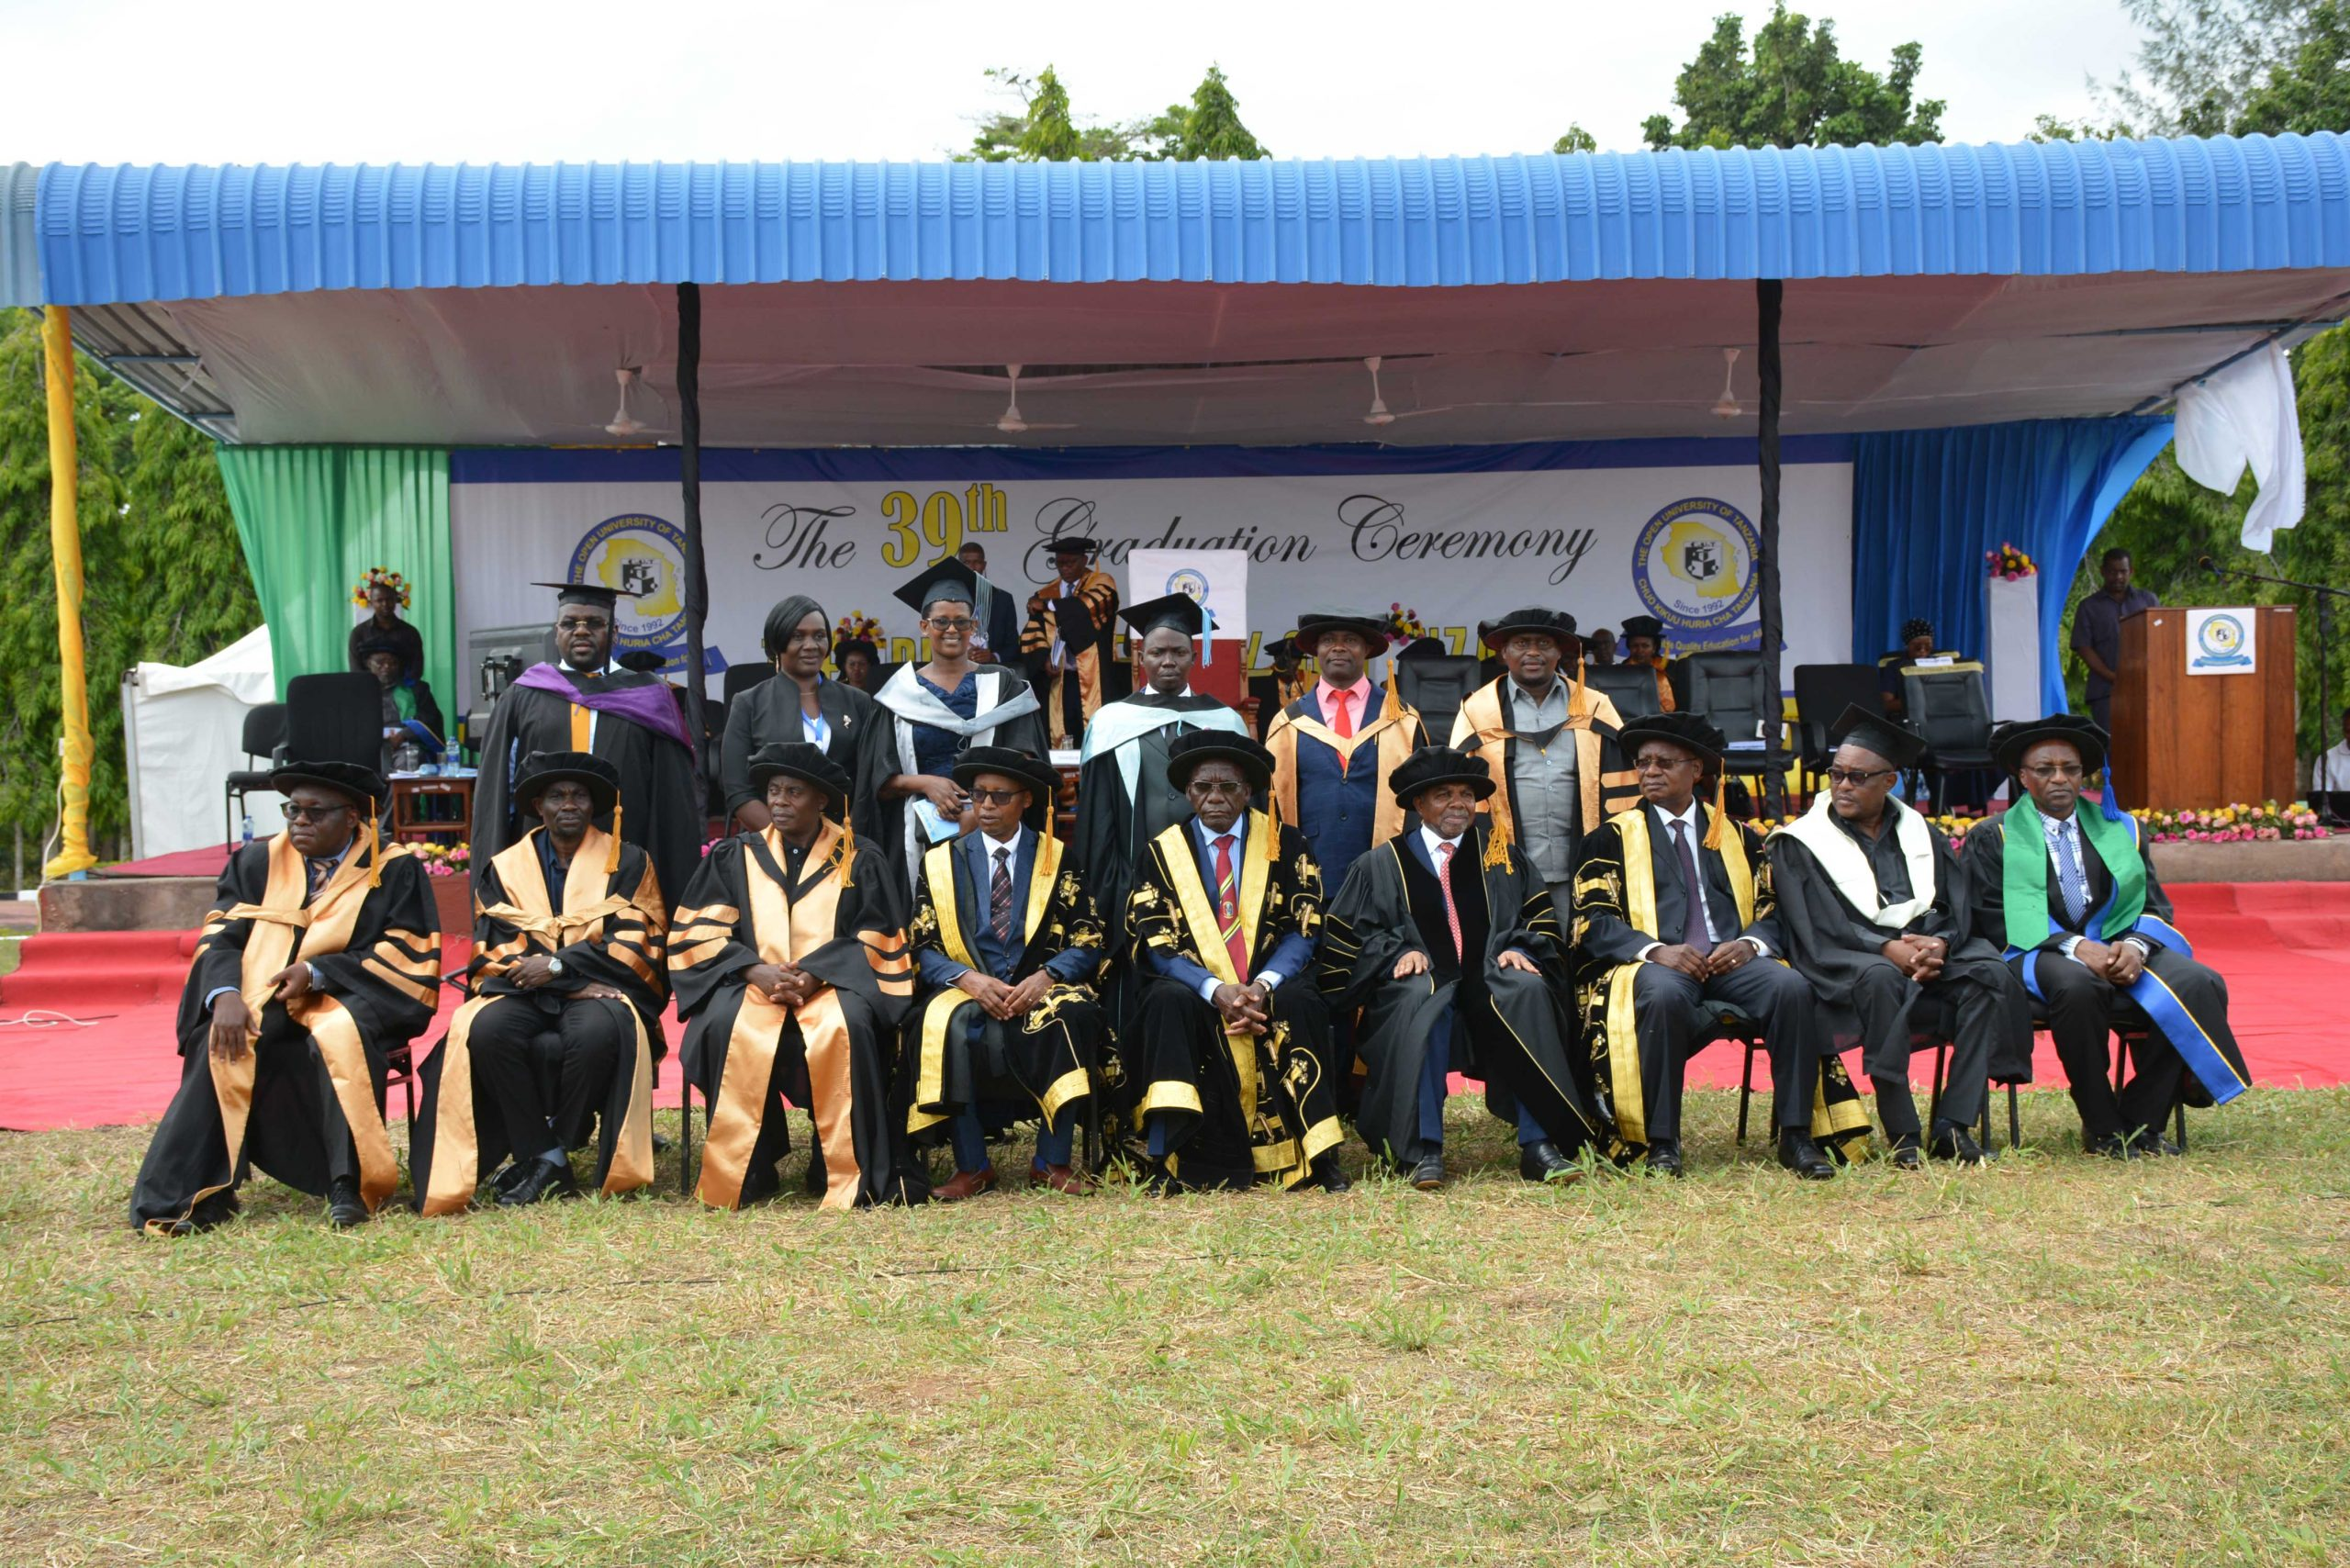 39th Graduation ceremonies of the Open University of Tanzania held at Bungo, Kibaha – Pwani on December 17, 2020 where the guest of Honor, the seventh President of Zanzibar Dr. Ali Mohamed Shein witnessed 2996 students graduate.